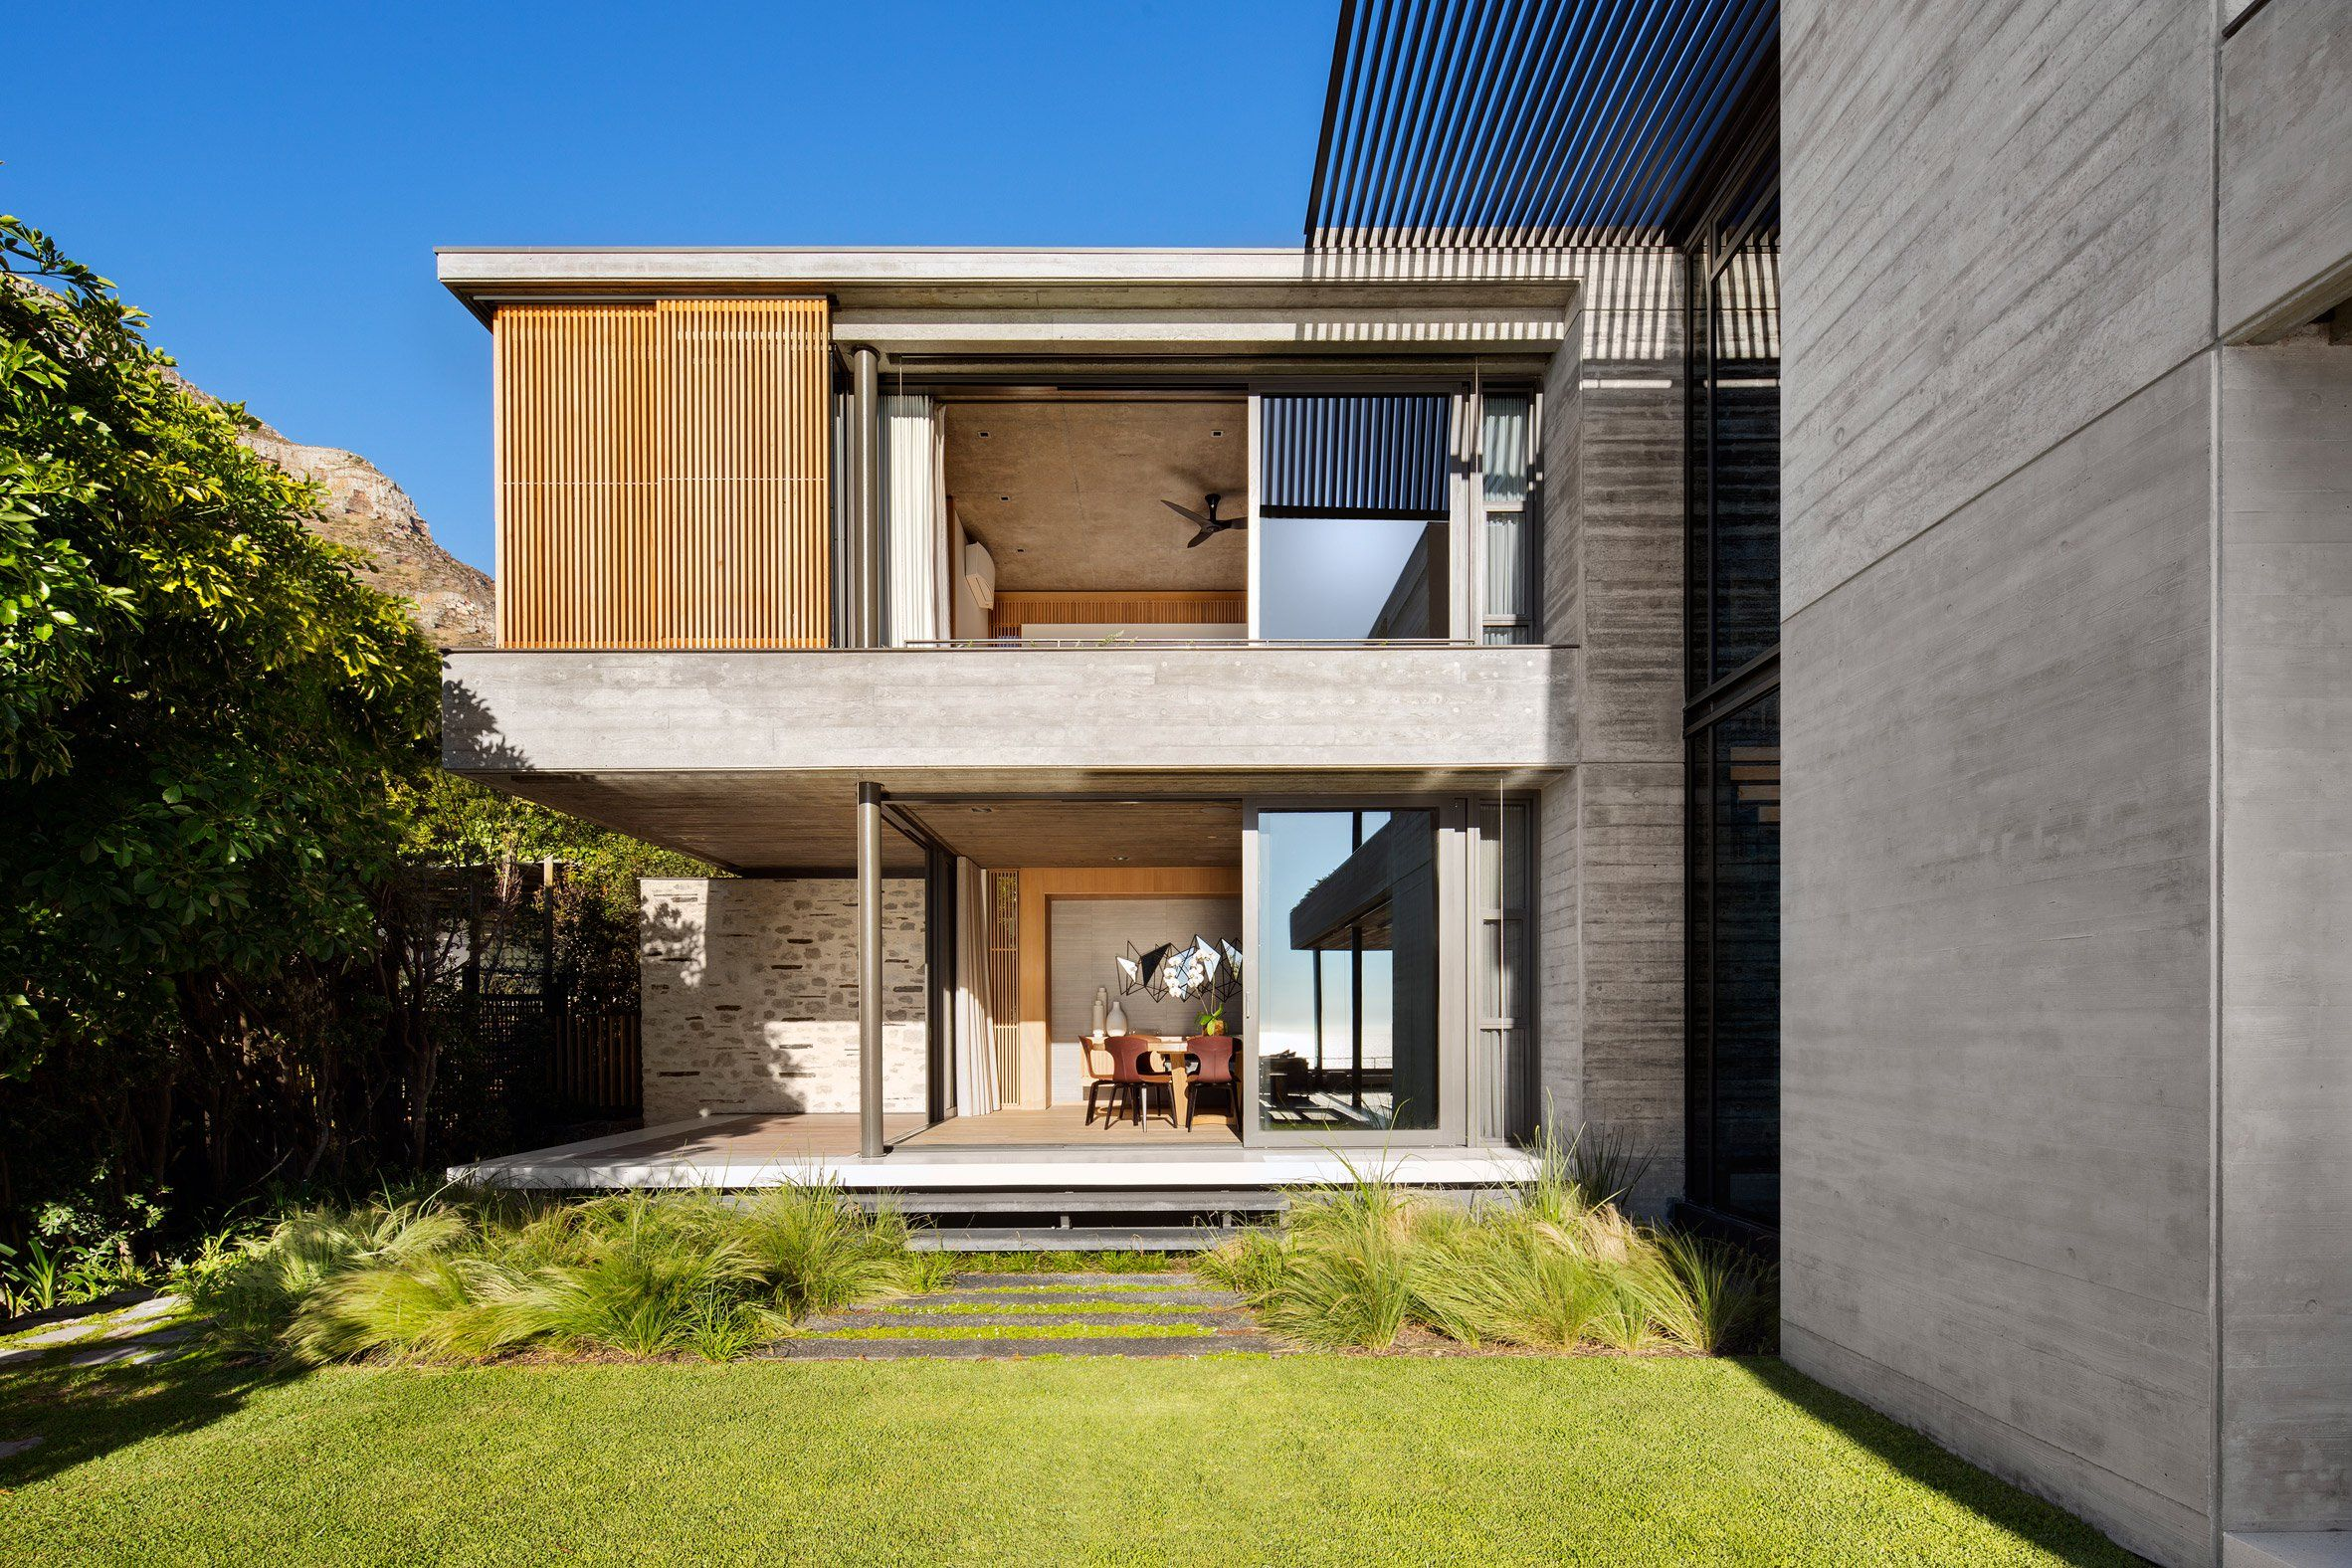 Local architecture firm Malan Vorster designs seaside Clifton House on world design of houses, cool design of houses, color of houses, bad design of houses, size of houses, modern design of houses, different house plans designs, different roof designs, different design cars, beautiful design of houses,